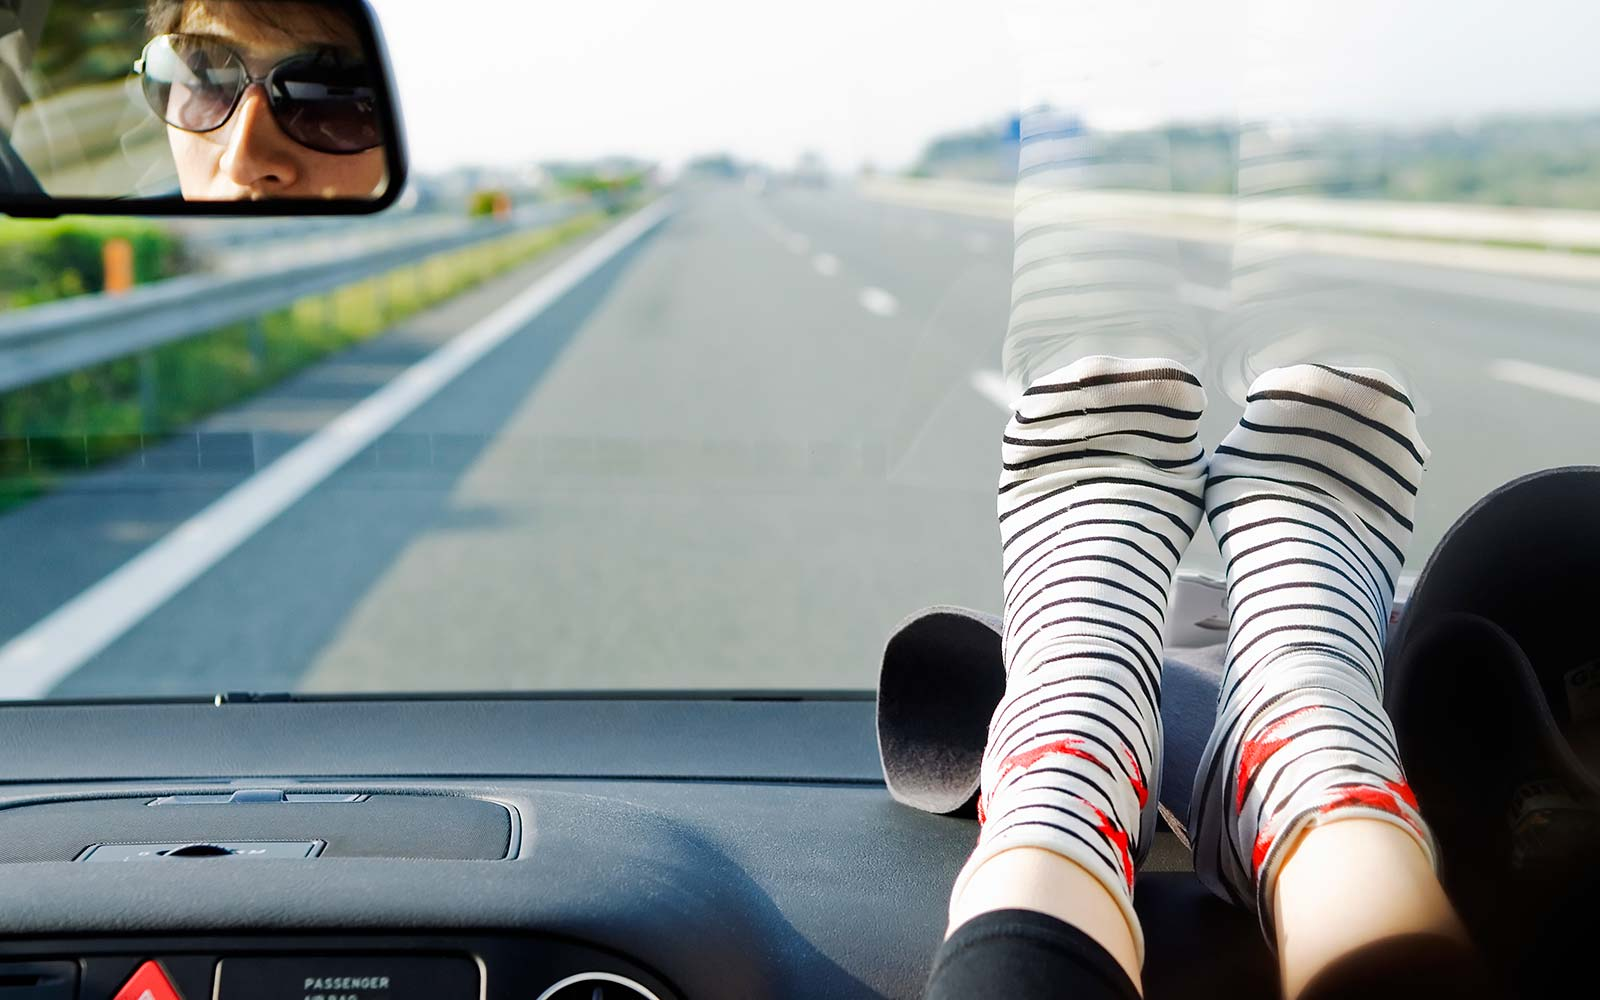 Driving road trip feet on dashboard drive danger warning